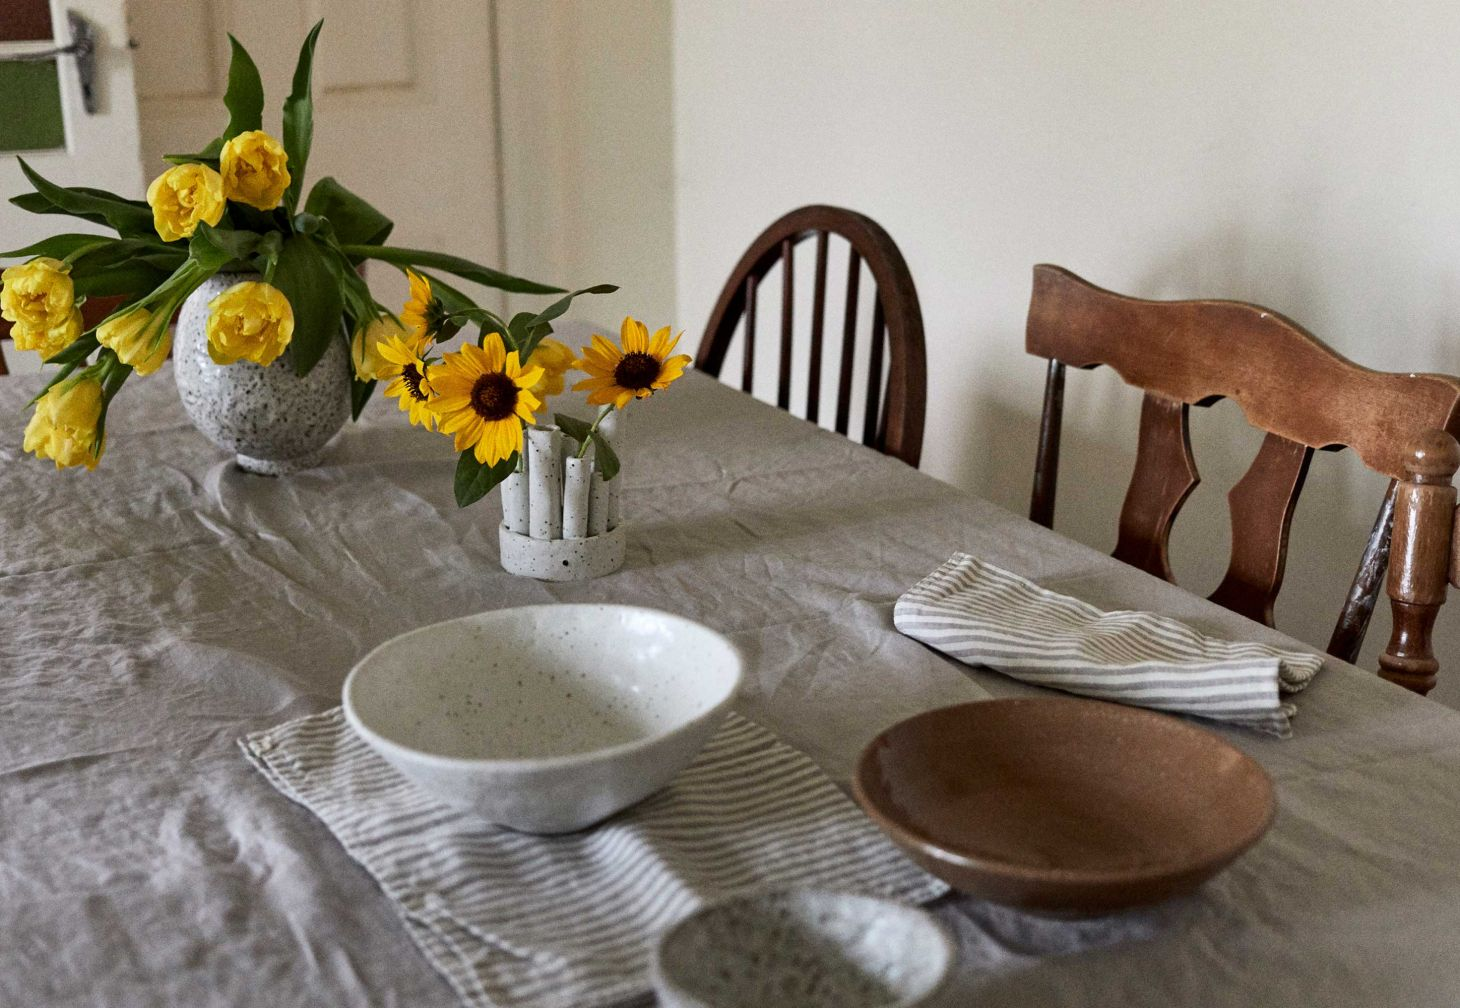 Linen tablecloths and napkins by IN BED